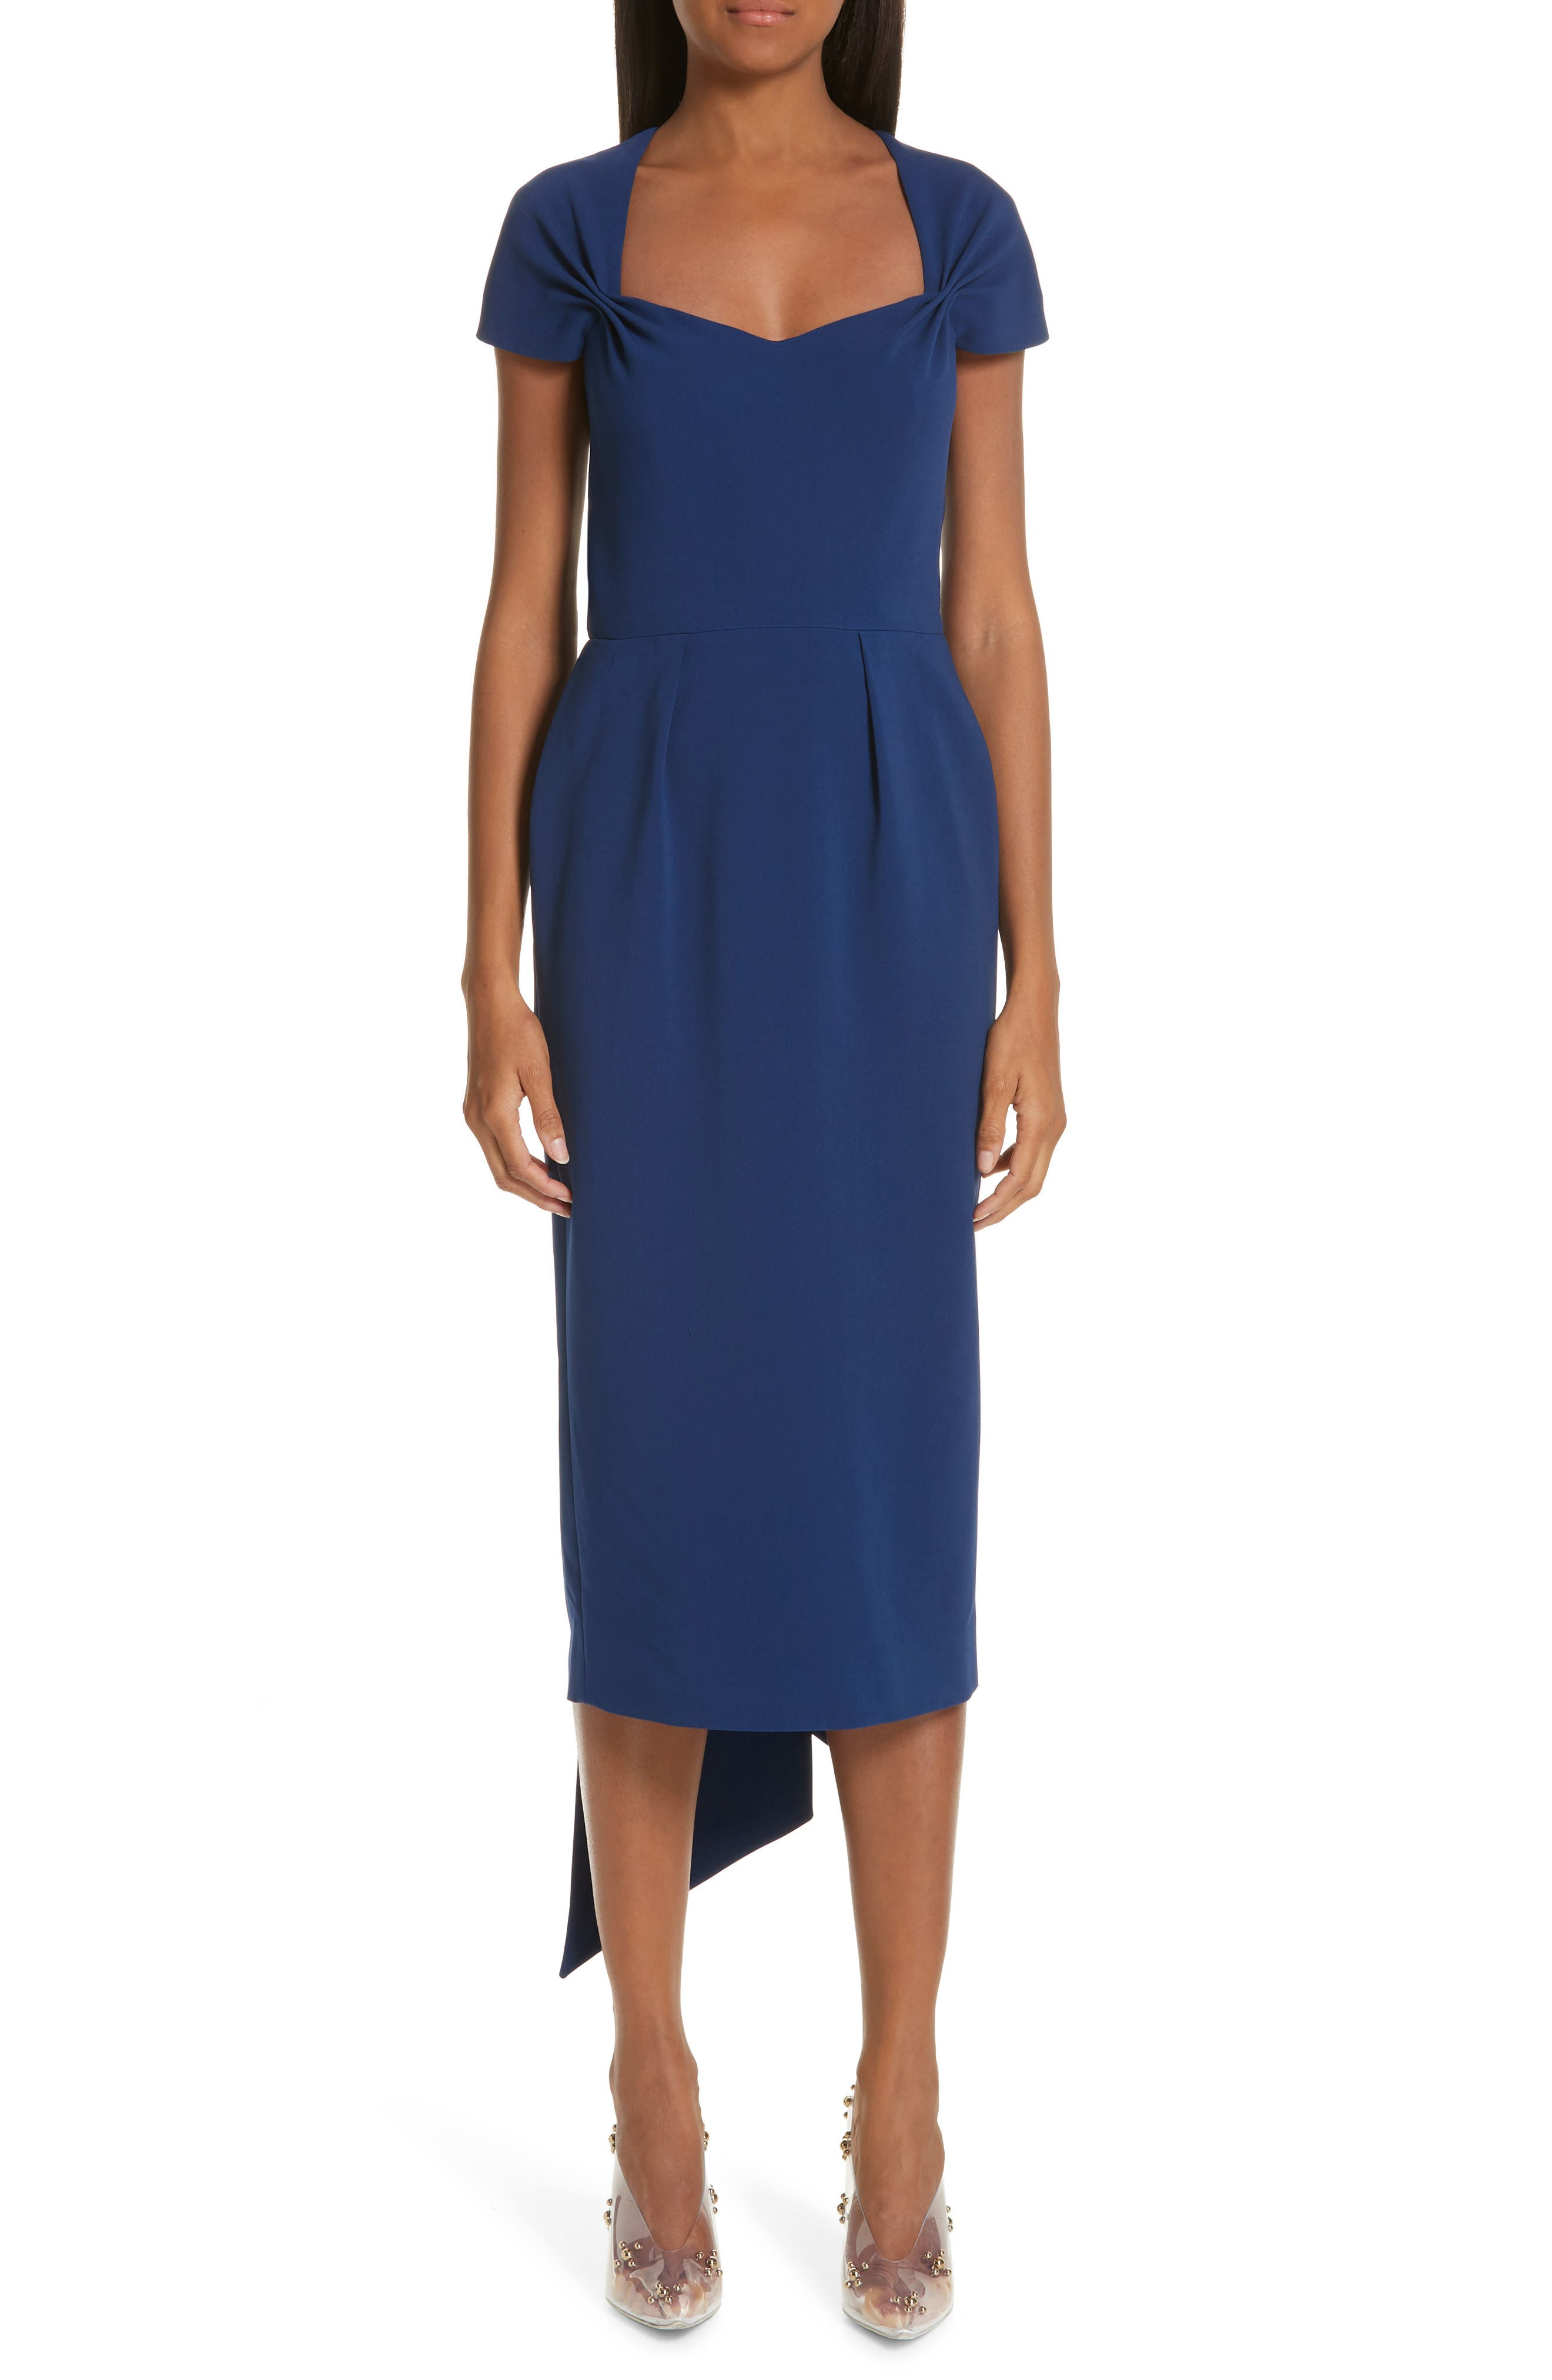 Stella Mccartney Midi Dress, 8 IT - Blue